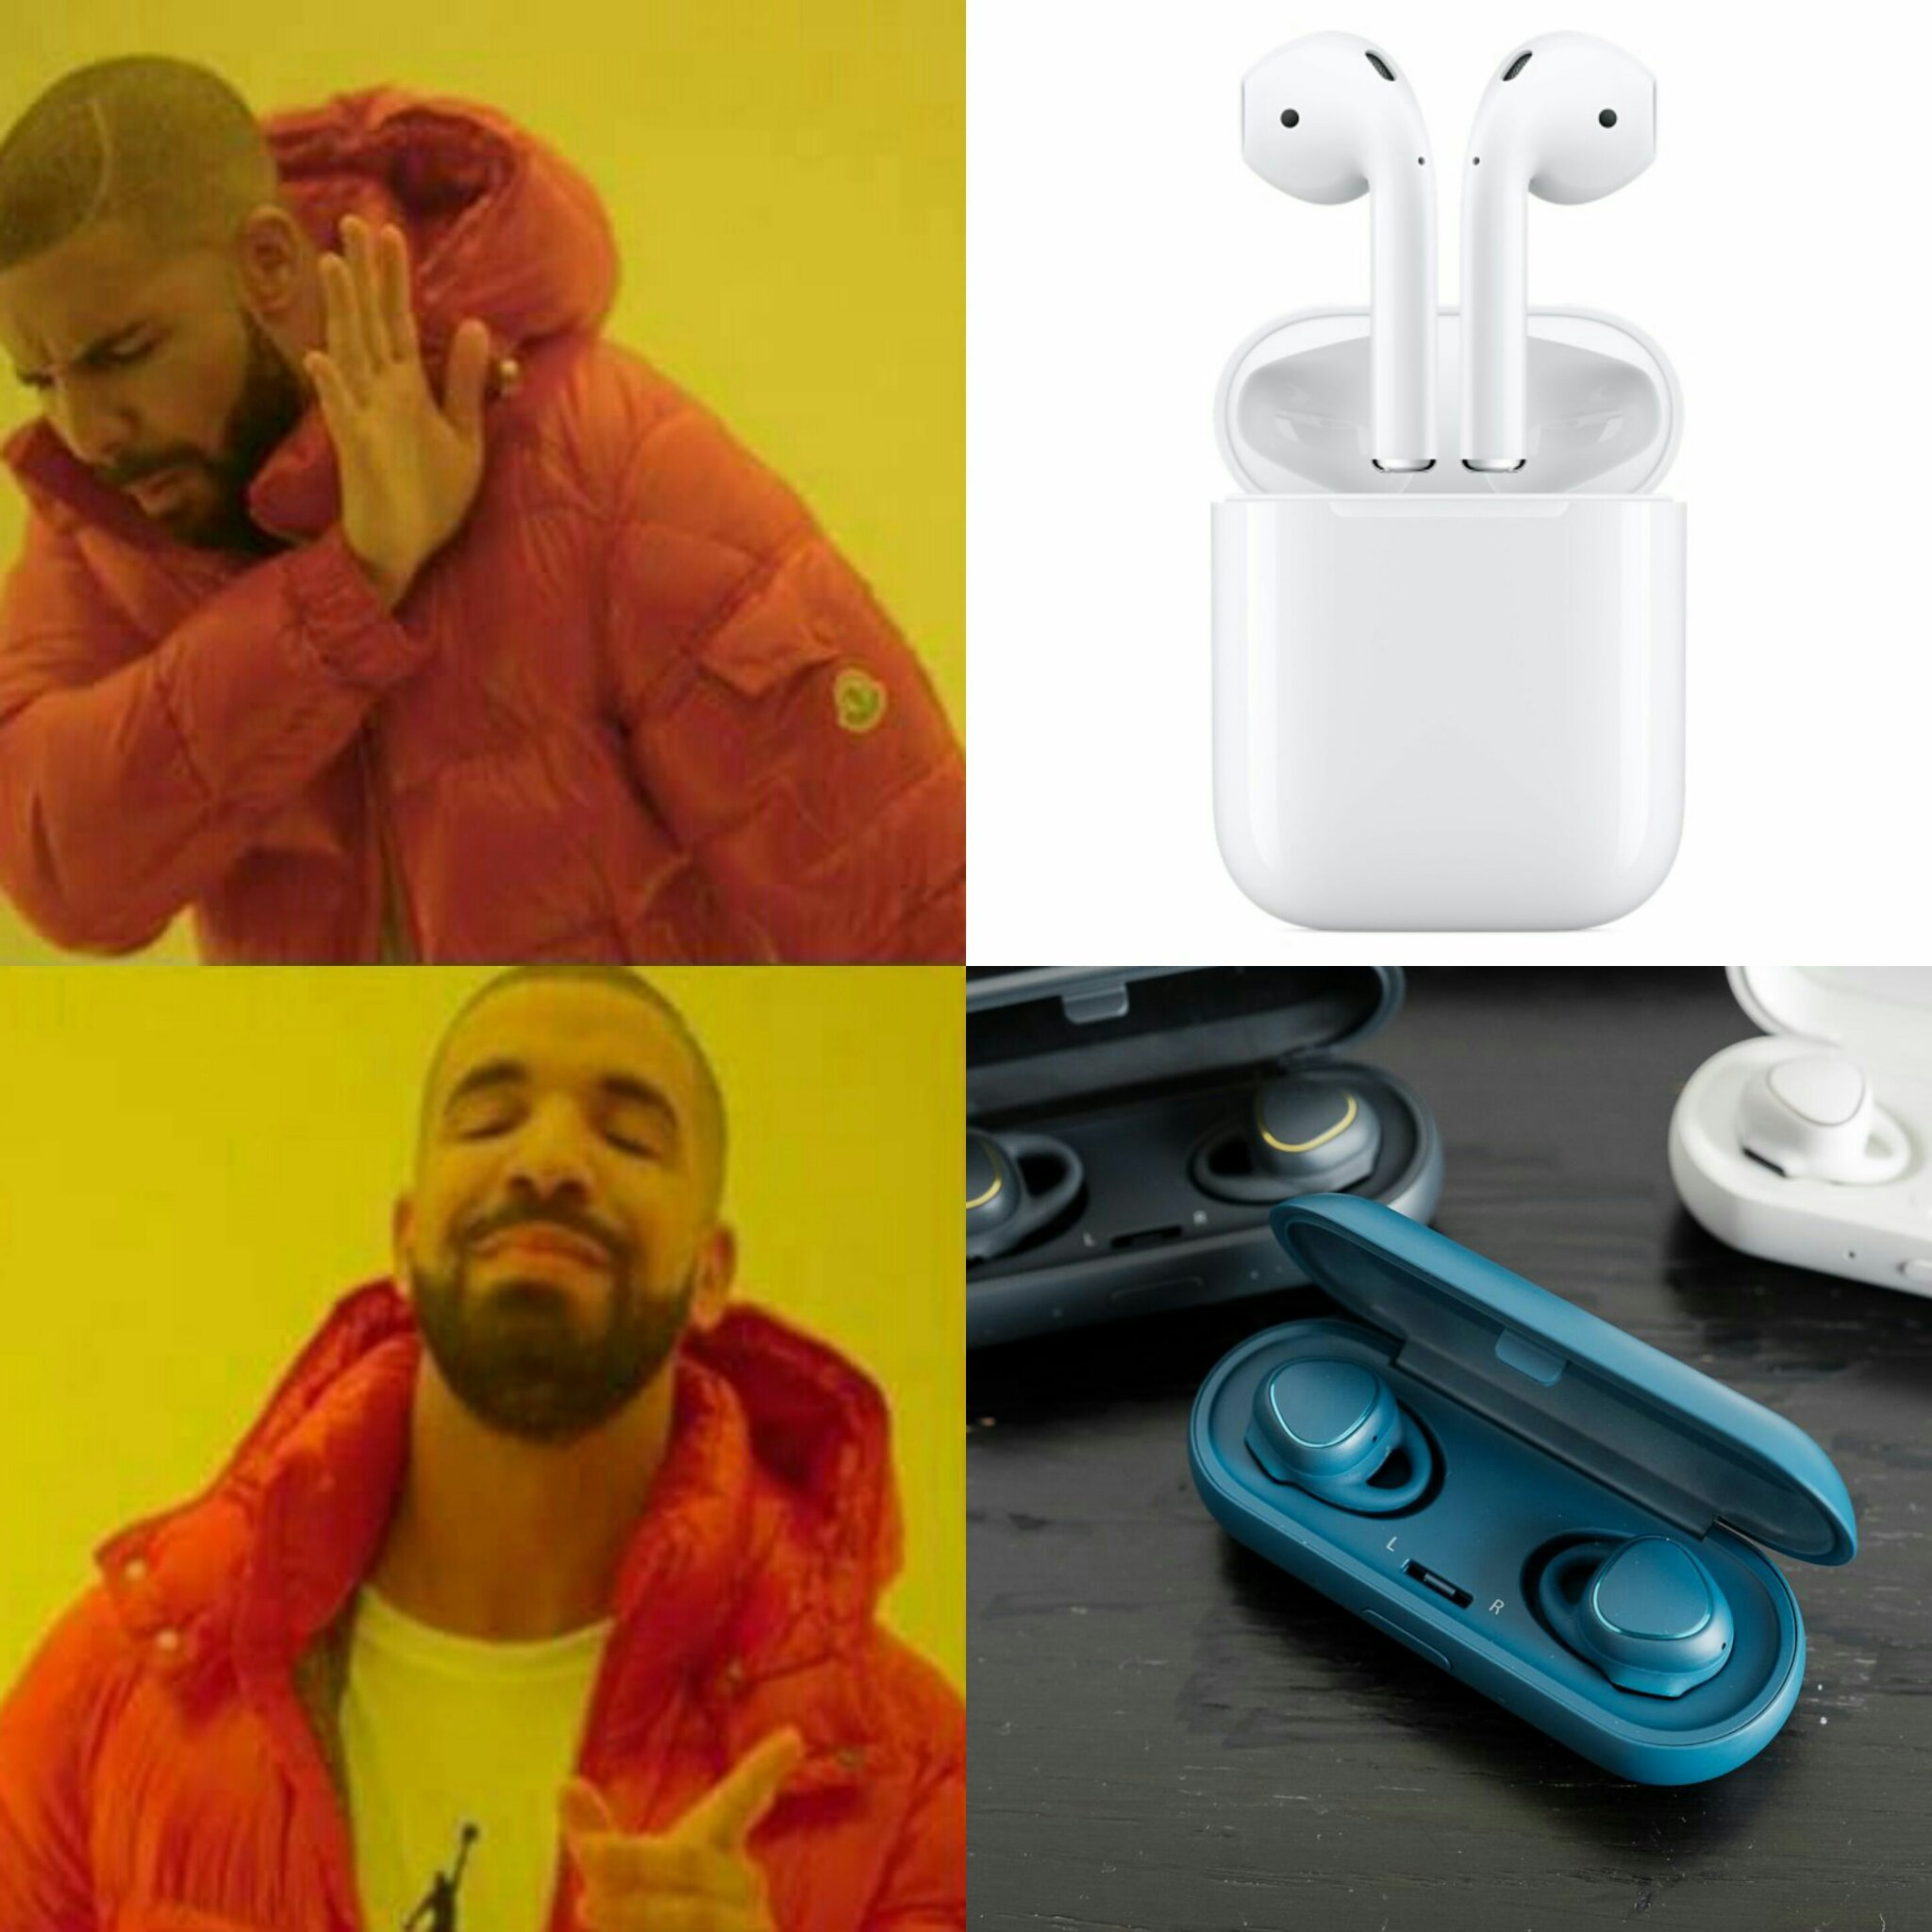 Airpods (apple) vs. Gear Iconx (Samsung) - meme